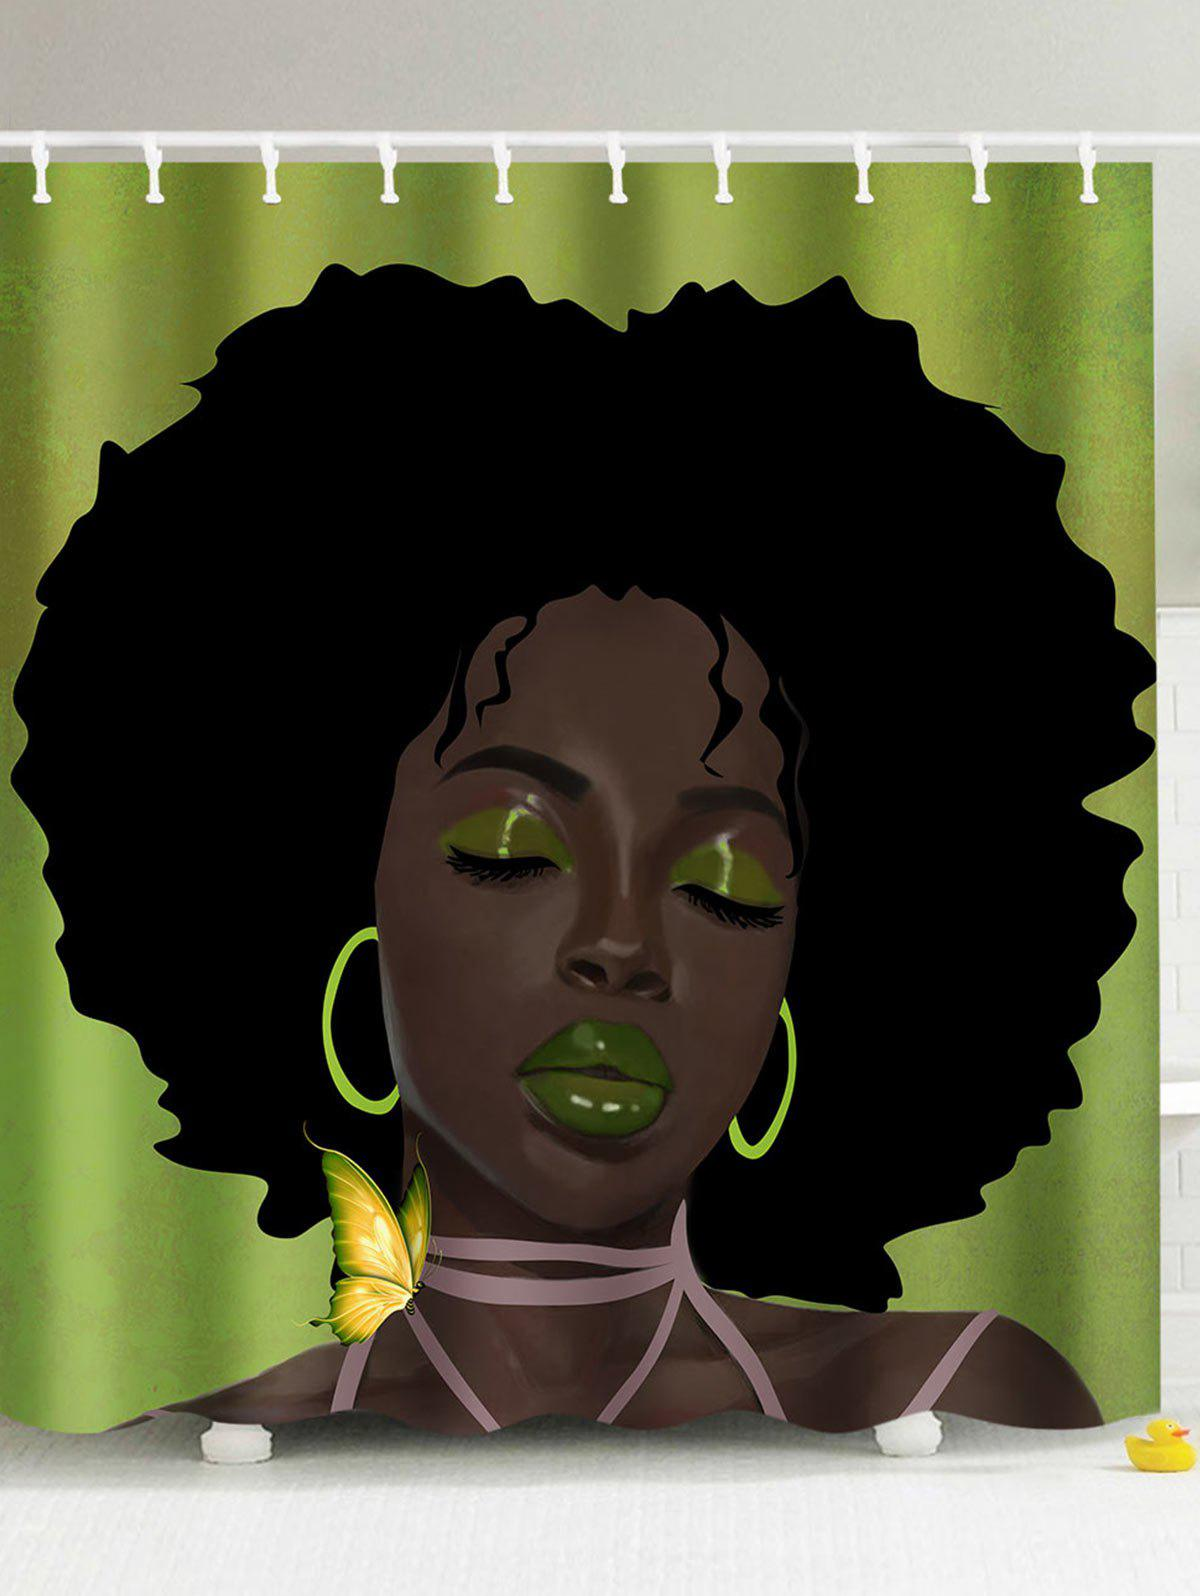 Colormix 150 180cm Afro Hair Lady Immersed In Her Own World Shower Curtain Rosegal Com